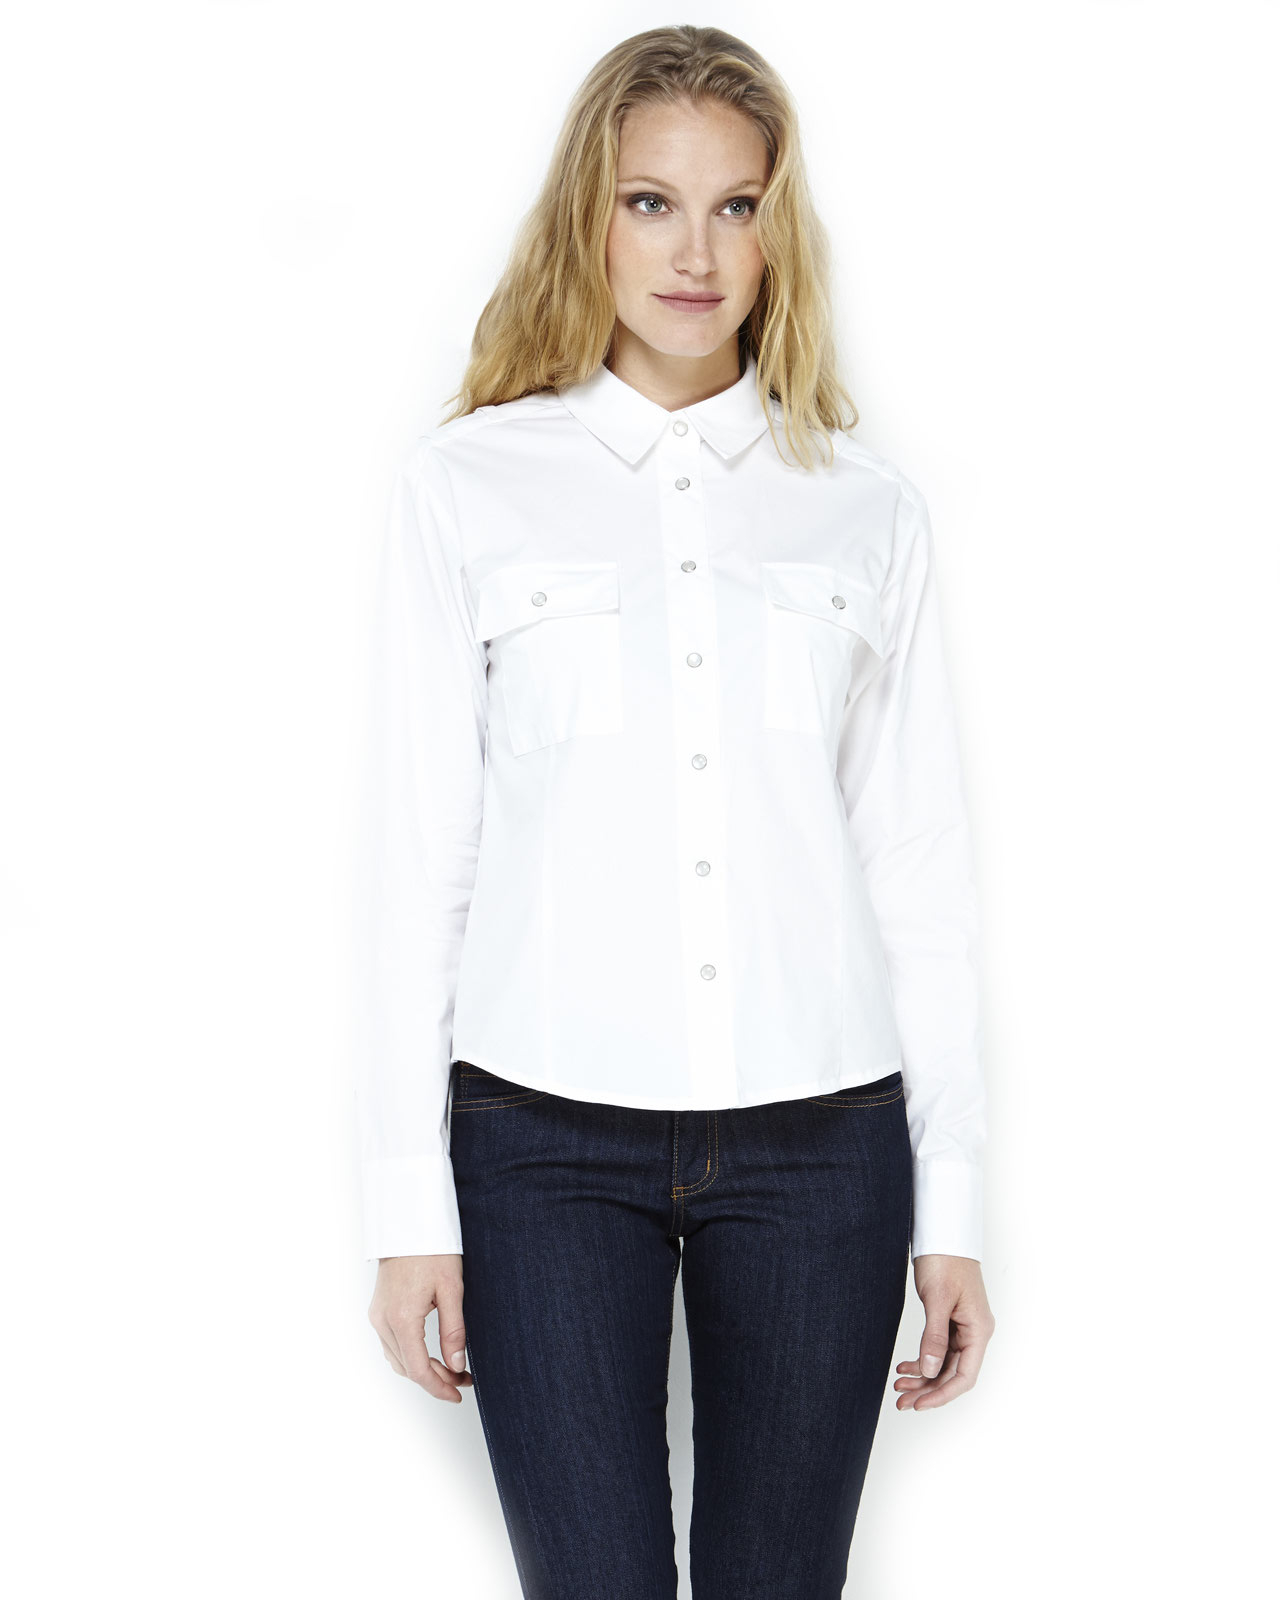 8b65418a BCBGeneration White Boxy Button-Up Shirt in White - Lyst